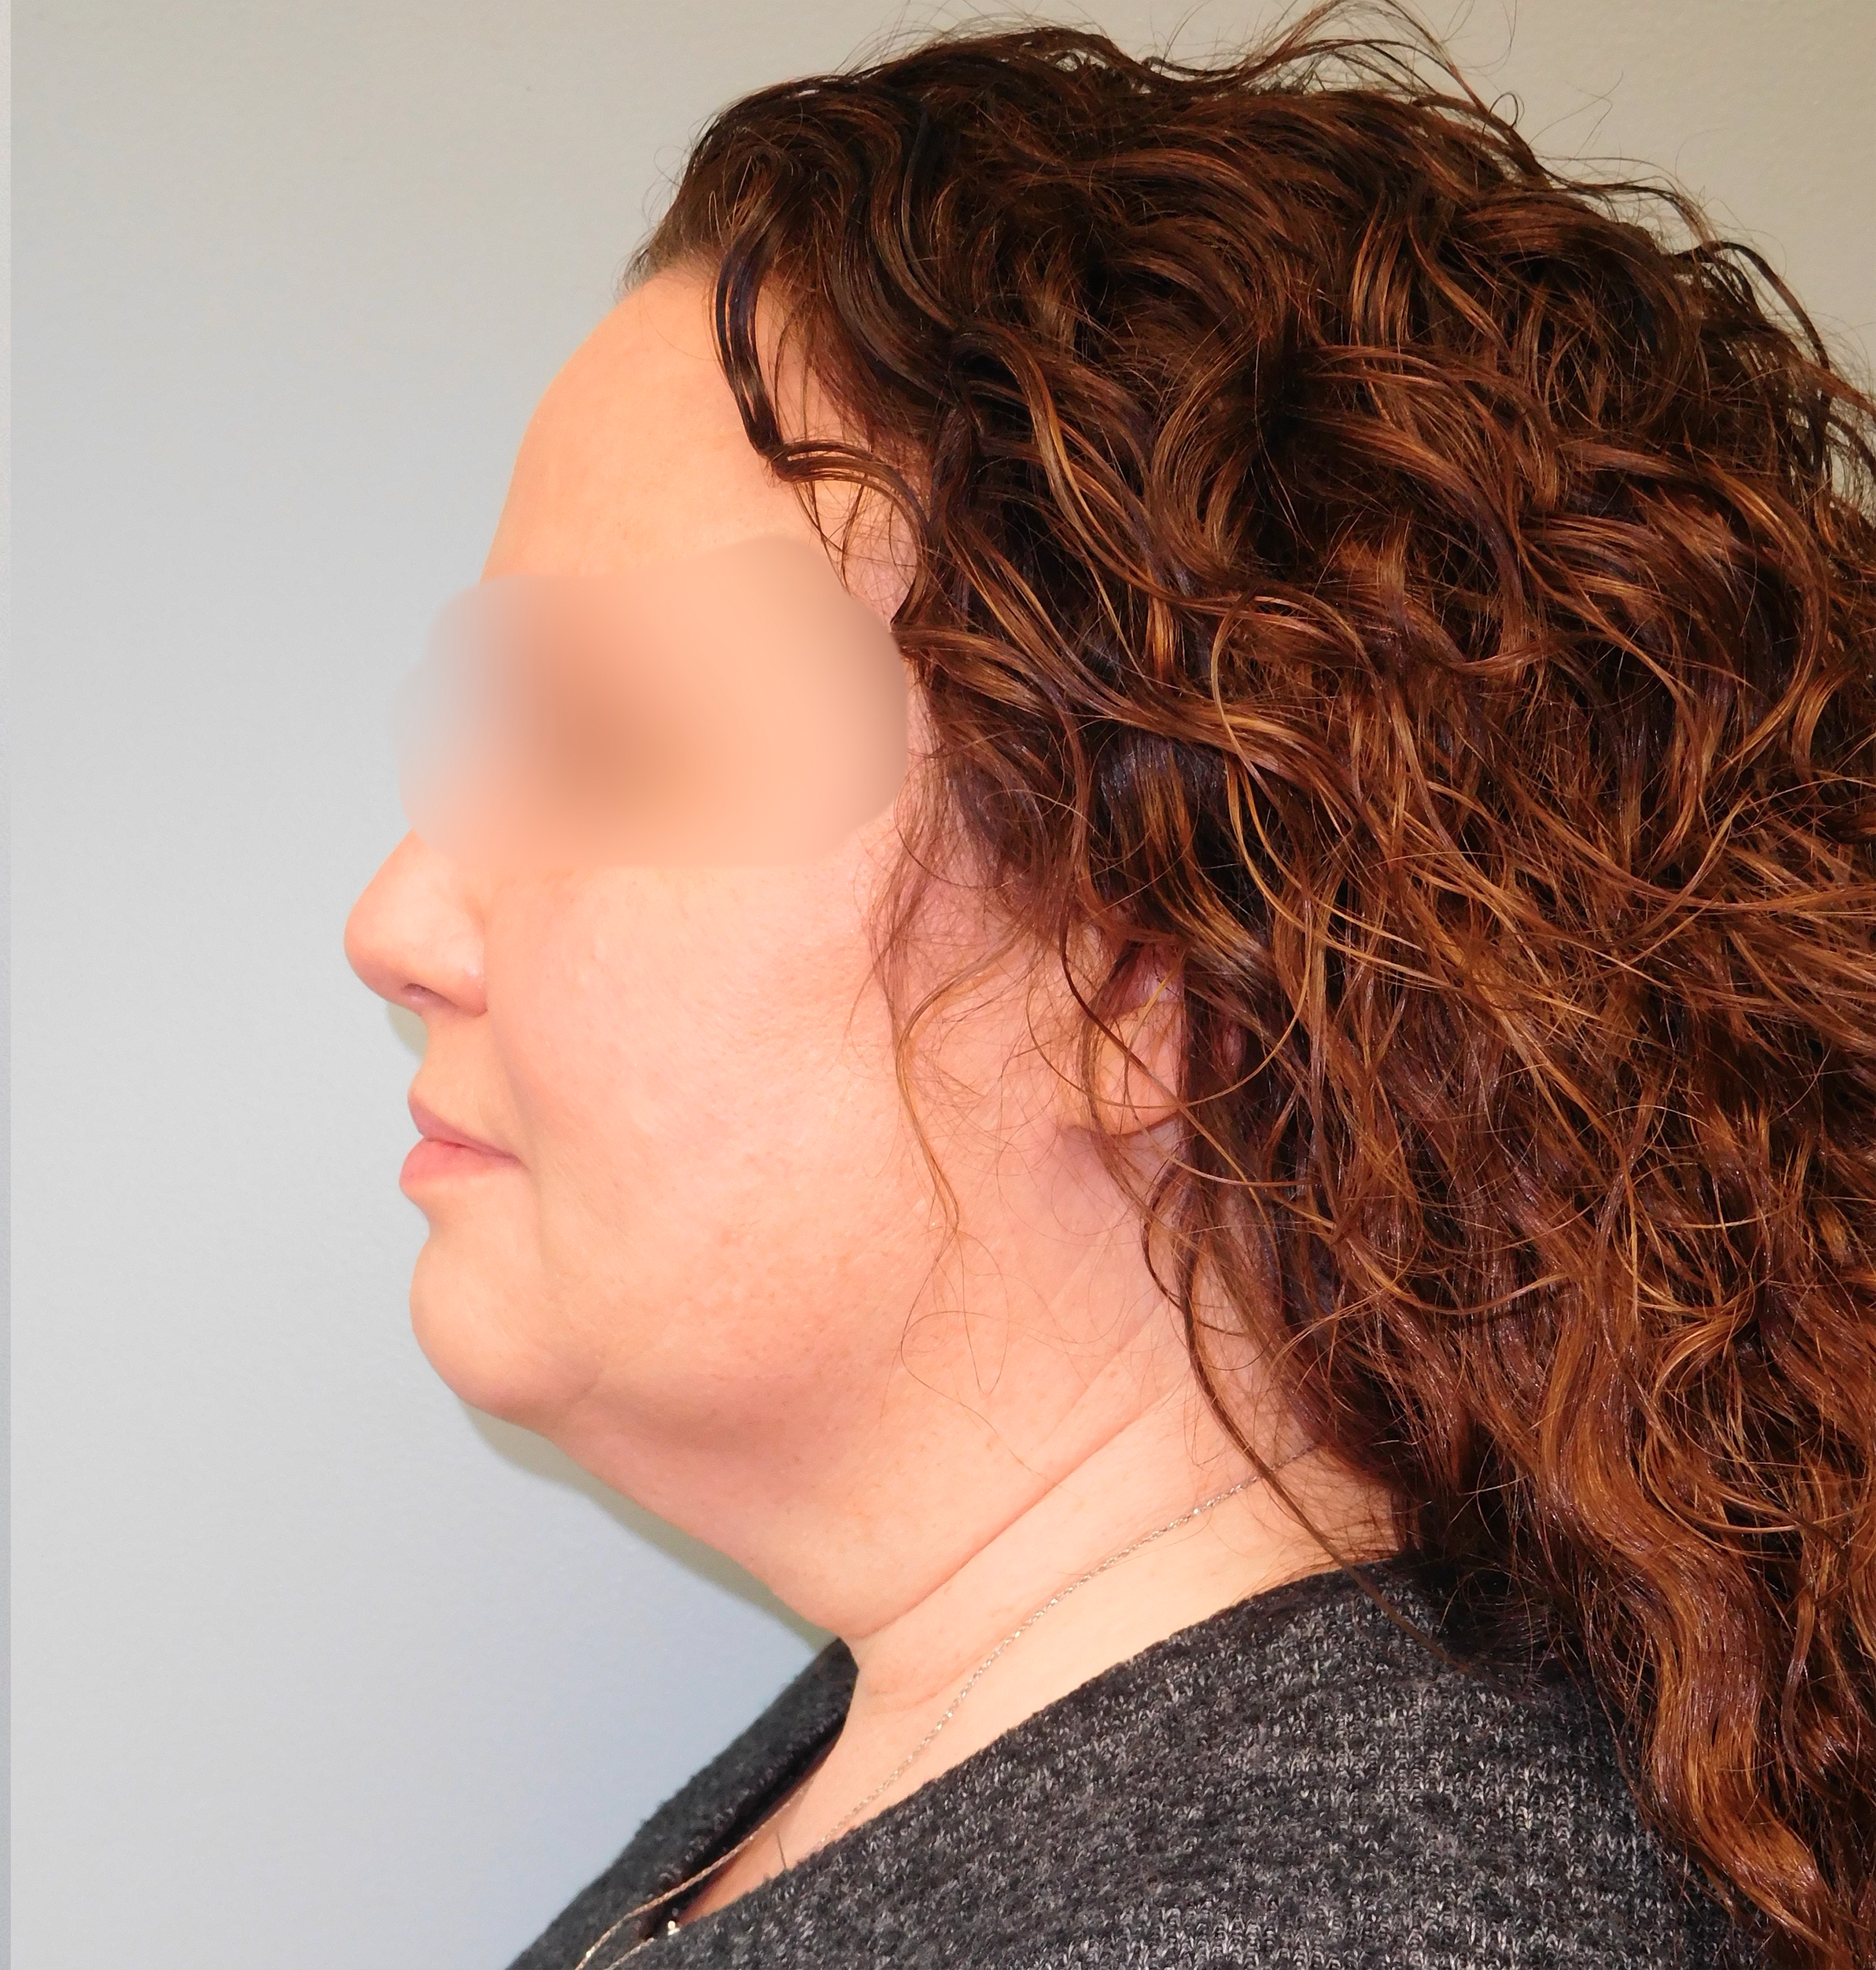 This patient underwent a full face and necklift performed at SOMC Plastic Surgery